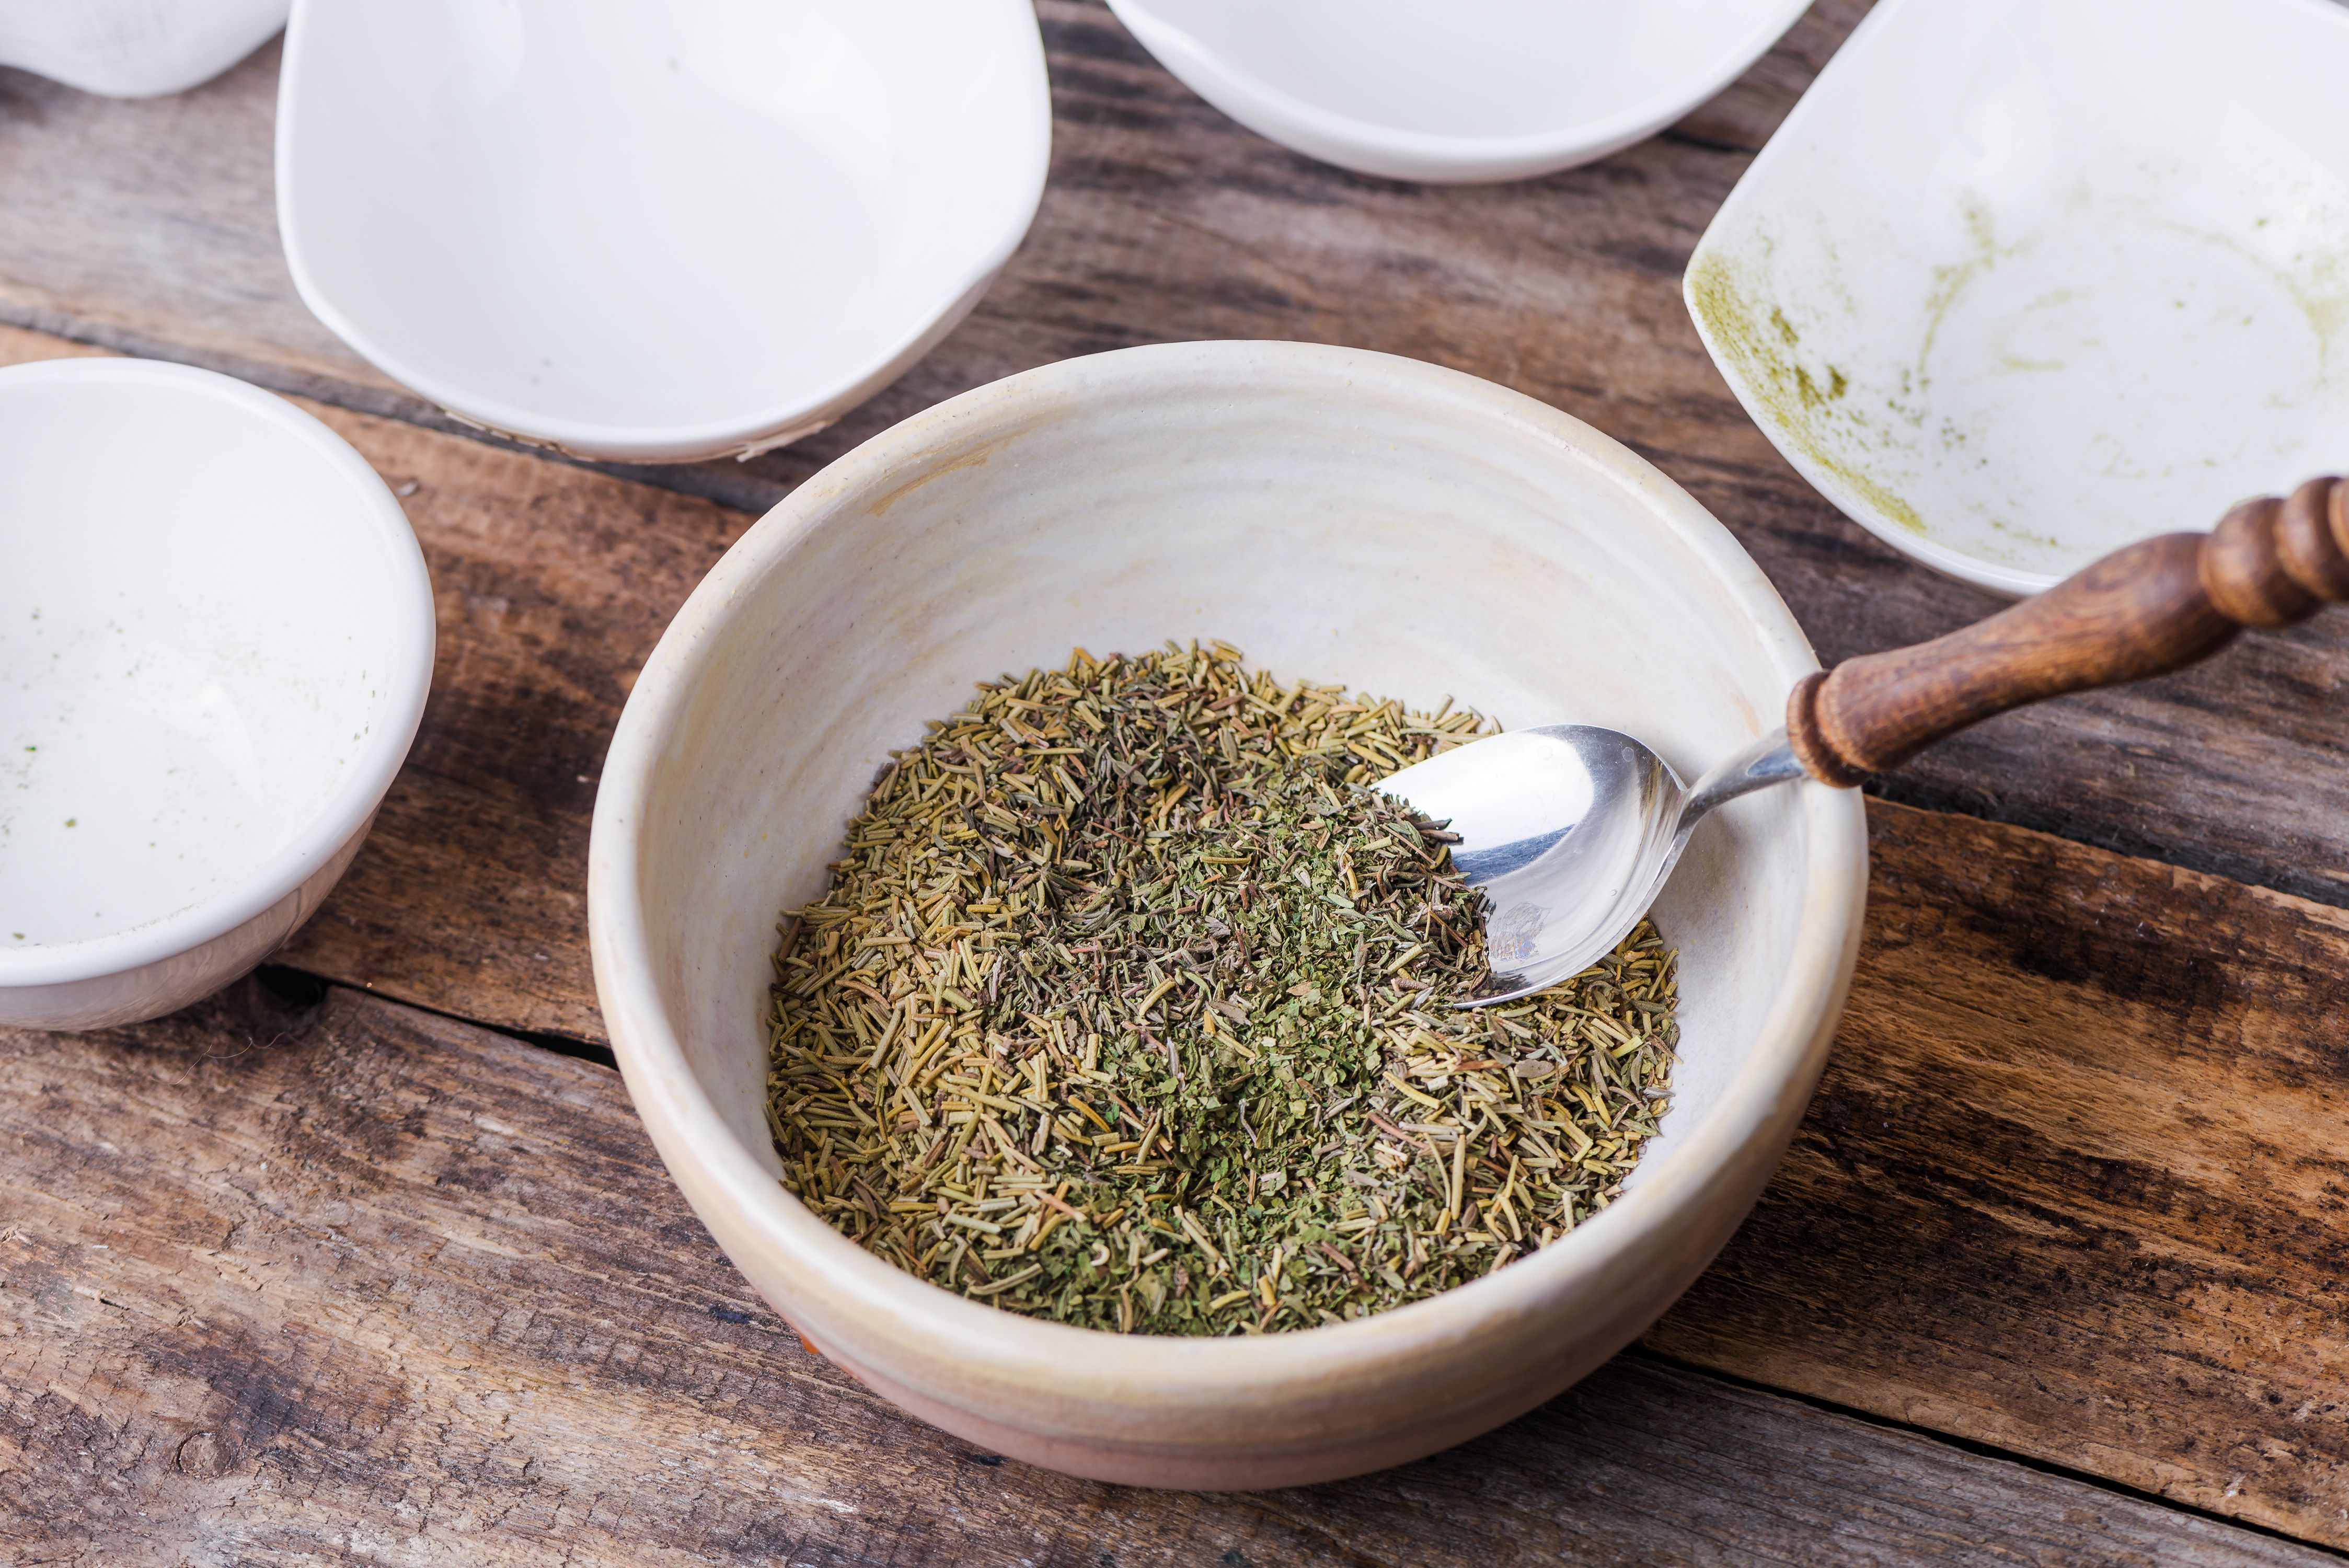 Spices combined in a bowl with a spoon